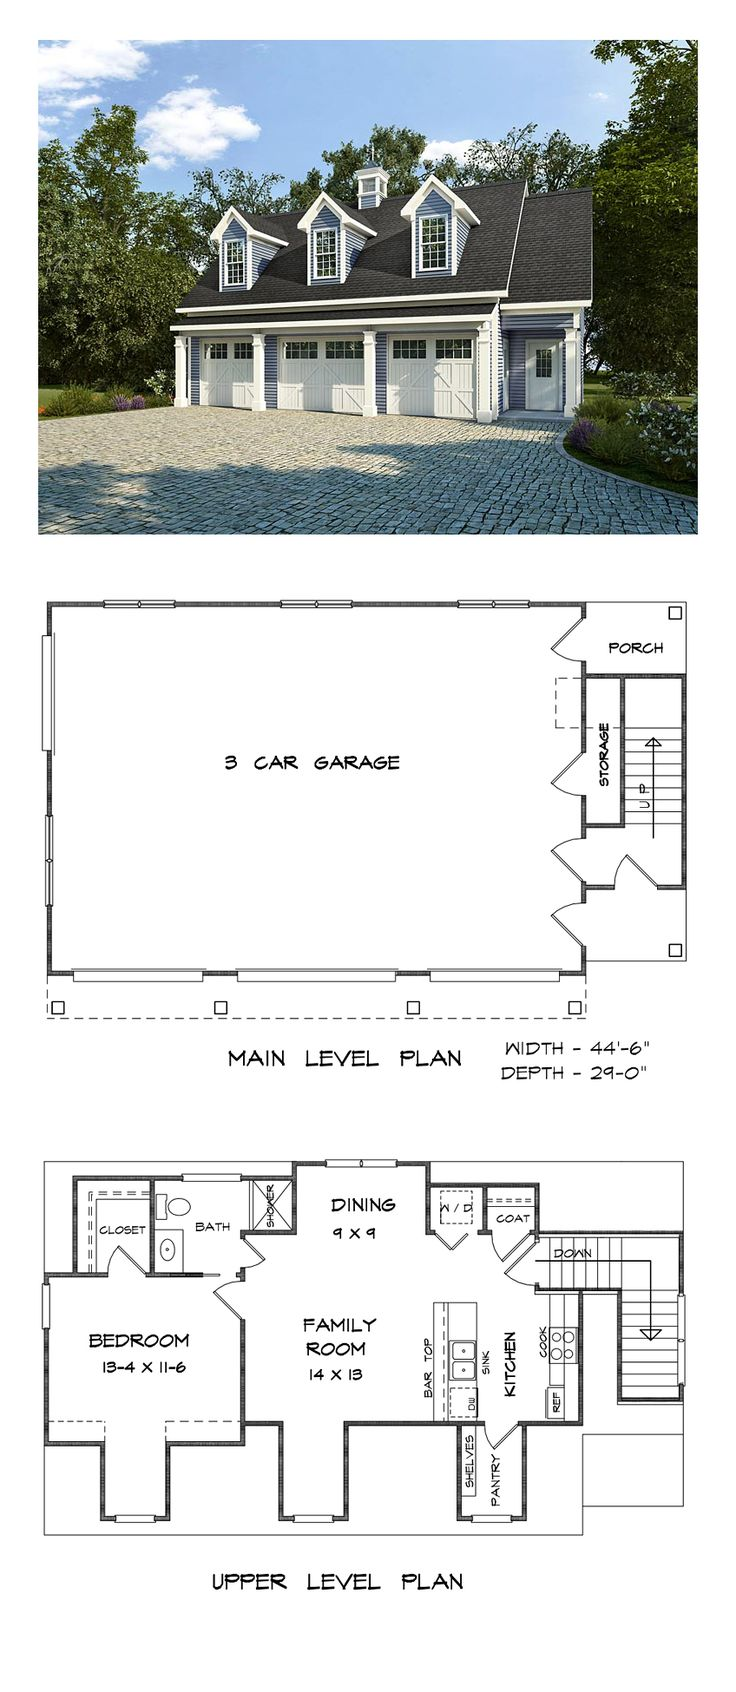 Garage Apartment Plan 58248   Total Living Area  1812 sq  ft   1  Garage  Apartment PlansGarage Apartments3 Bedroom. 49 best Garage Apartment Plans images on Pinterest   Garage